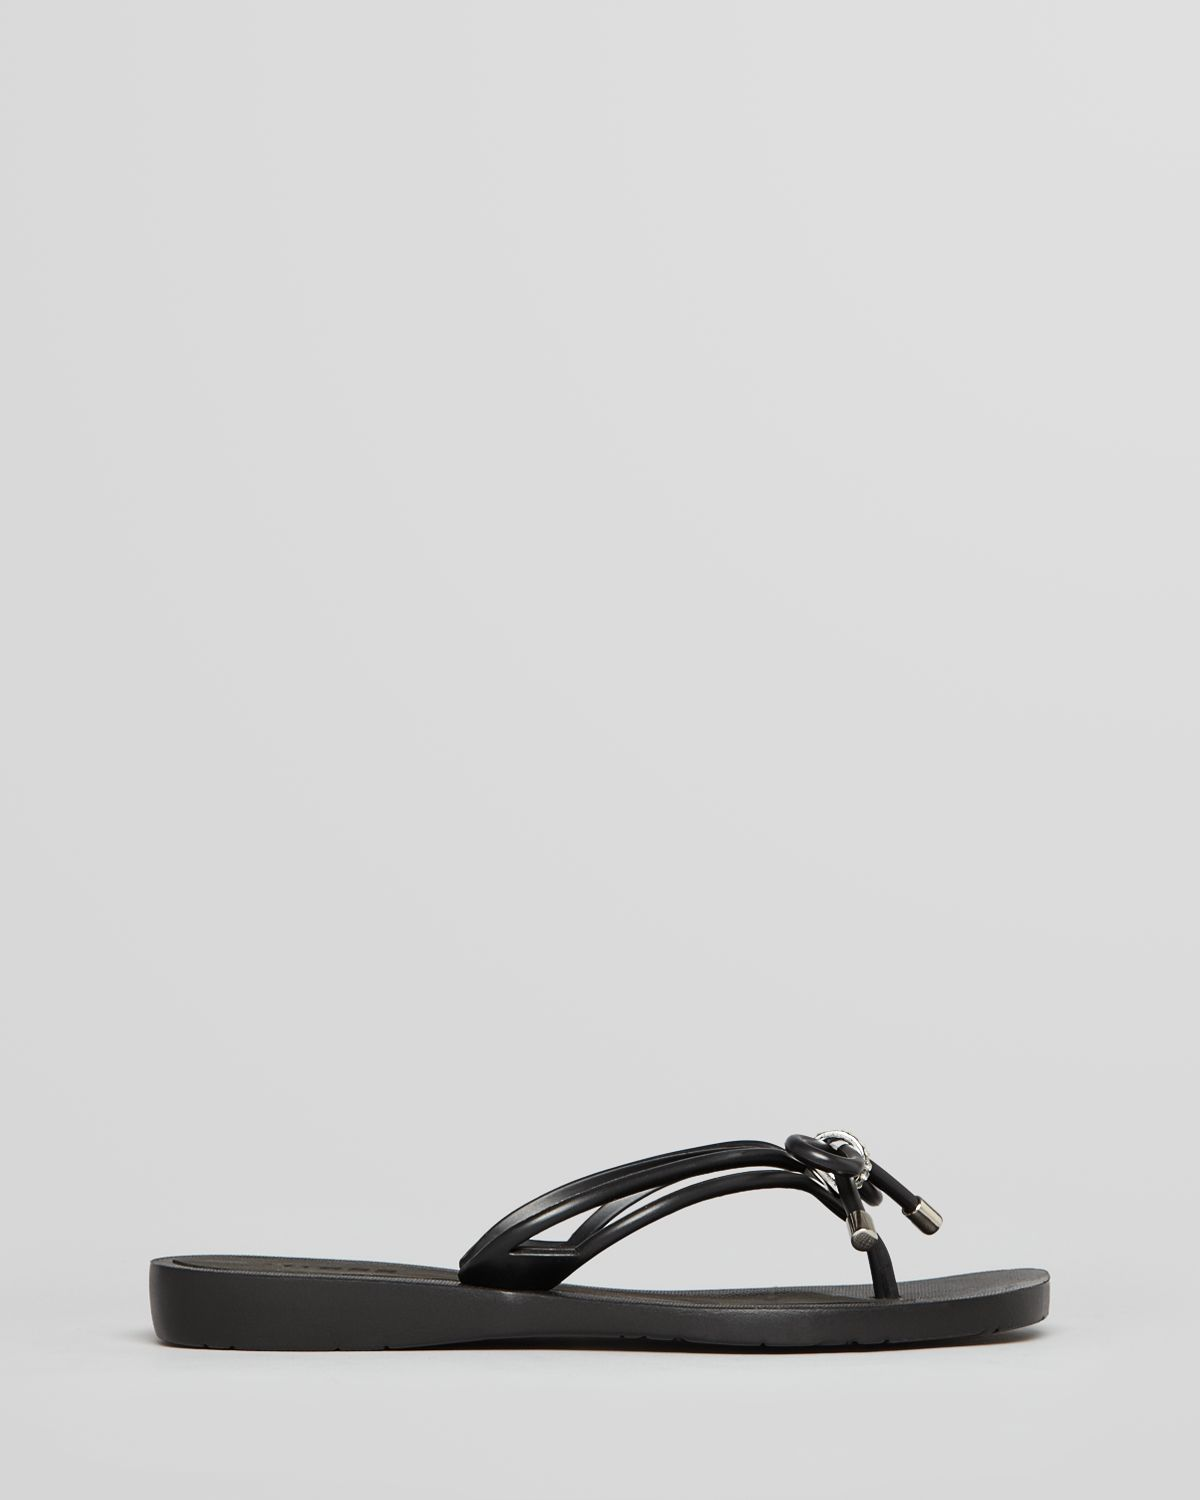 82743d582ac Lyst - Guess Flip Flops Talya Bow in Black